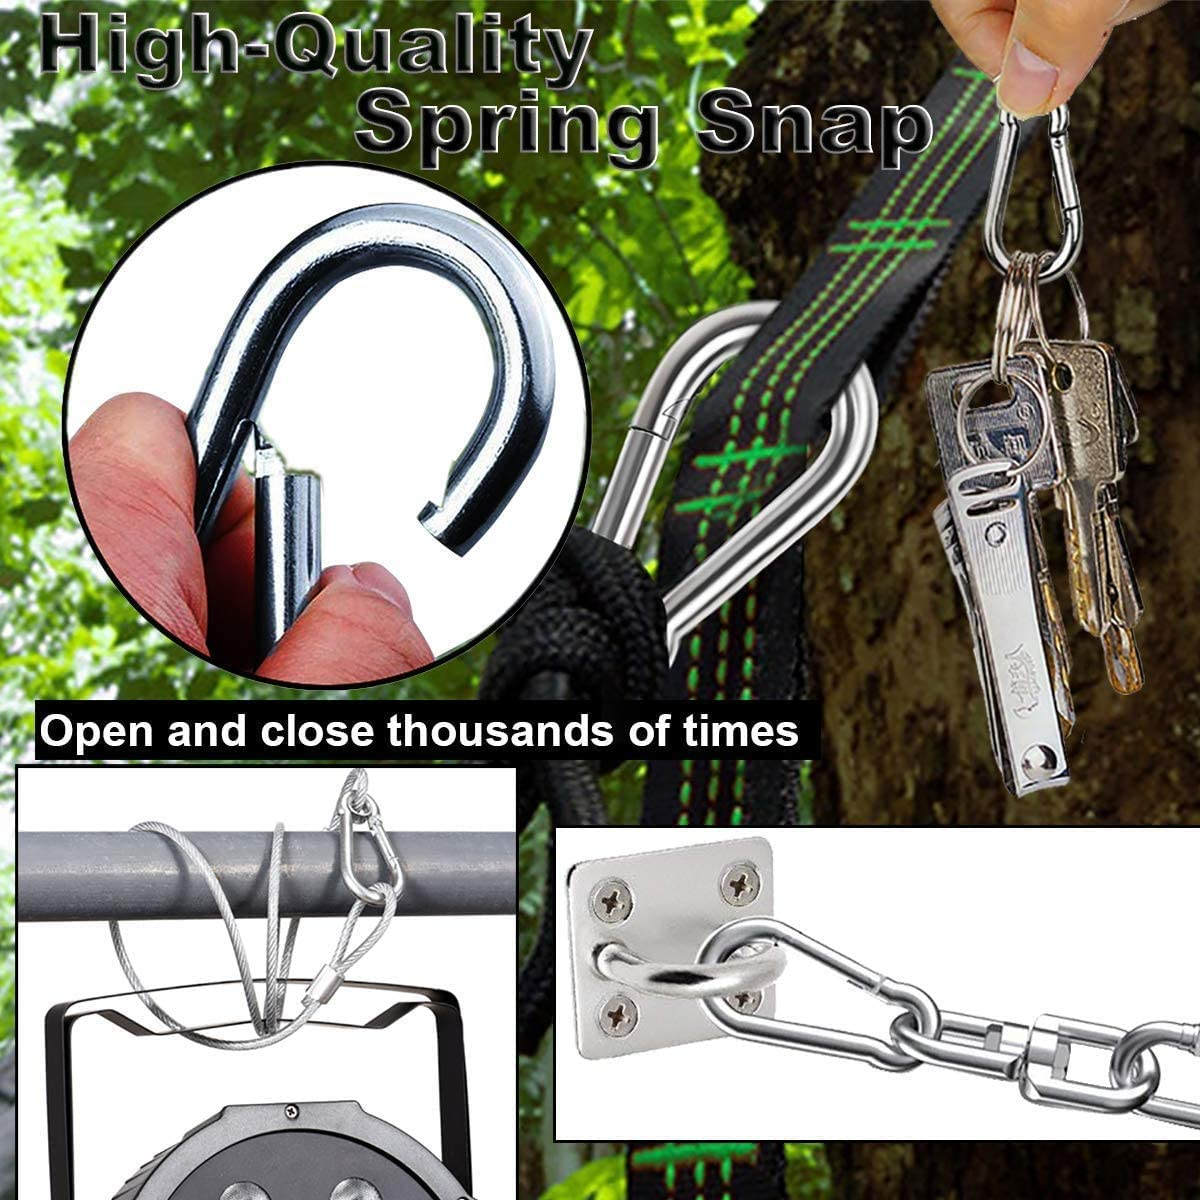 Outdoor and Gym Hiking Kuesn 4 Pack Spring Snap Hook Carabiner Stainless Steel 304 Screw Lock Silver Quick Link Clip Keychain for Camping Small M6 Carabiners for Dog Leash /& Harness Sliver